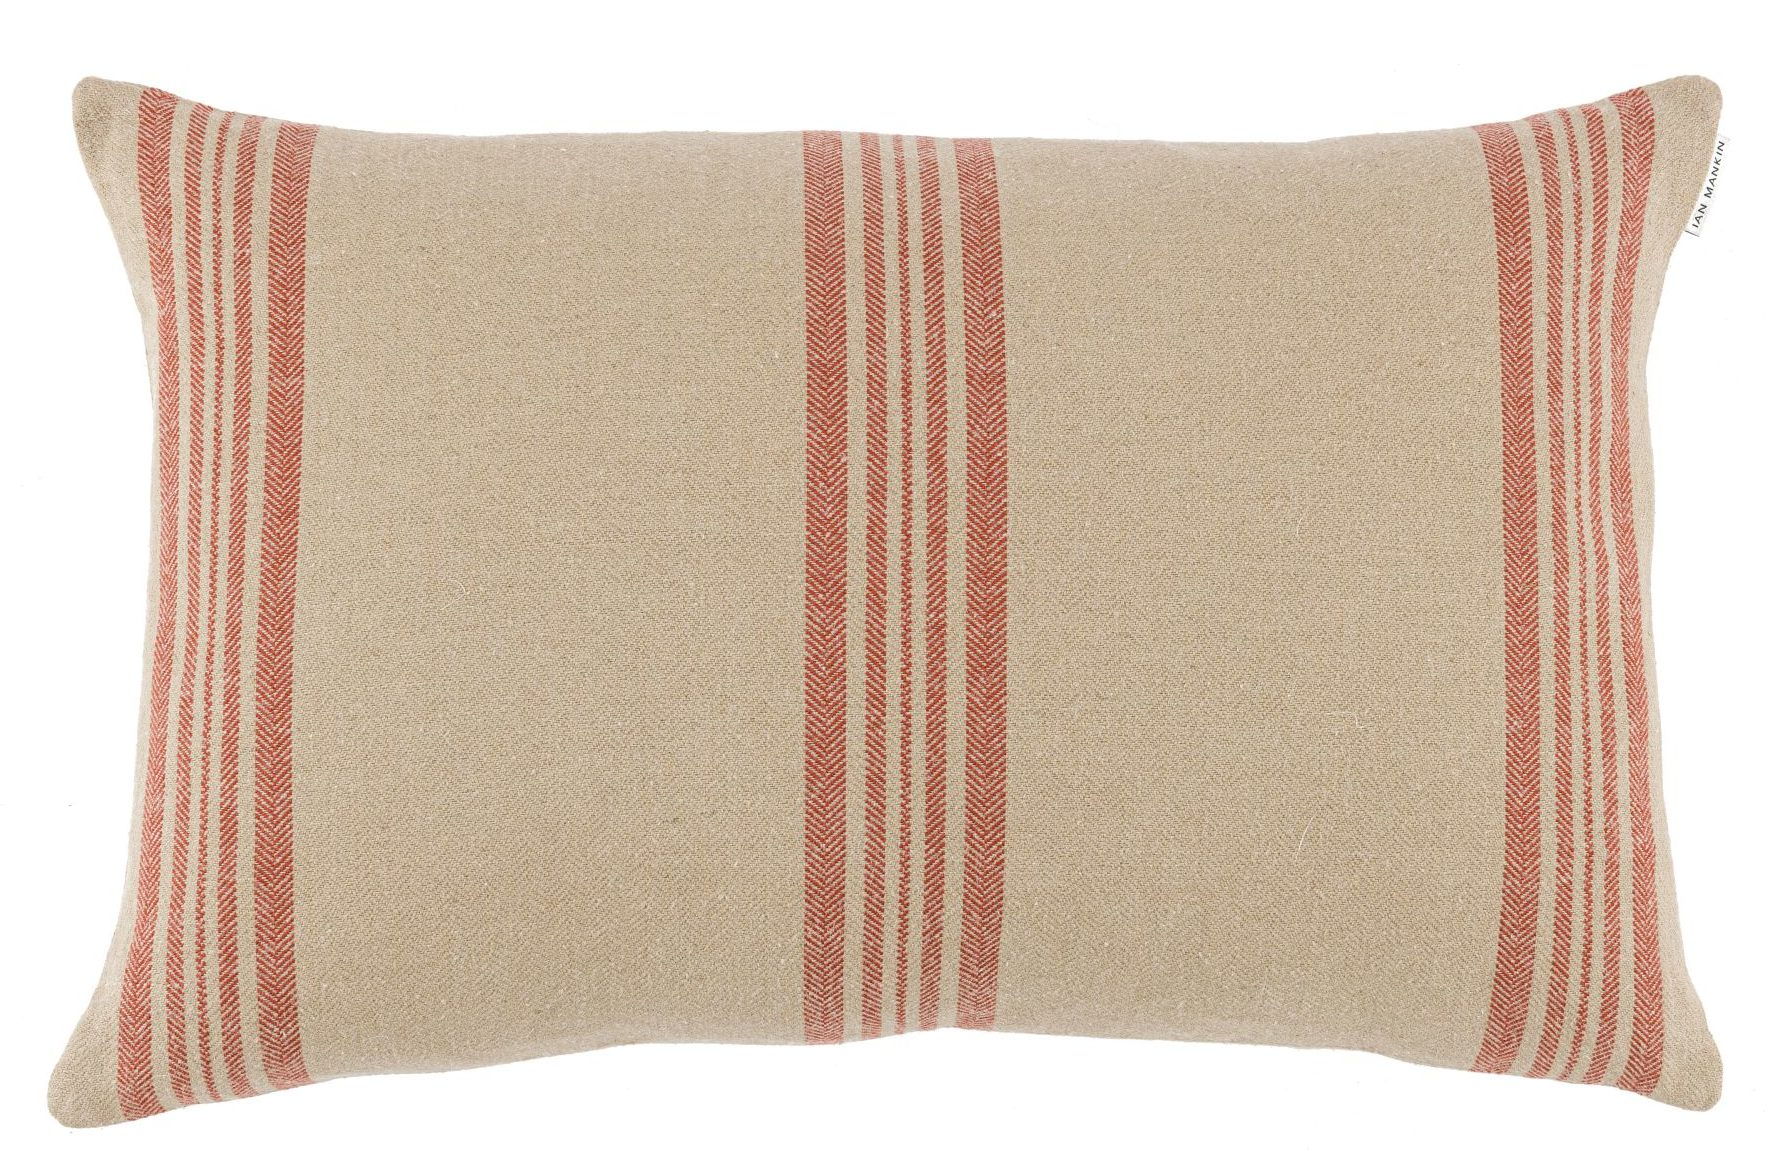 Ian Mankin Landmark 1485 Saddell Stripe Striped Russet Cushion CU279 199